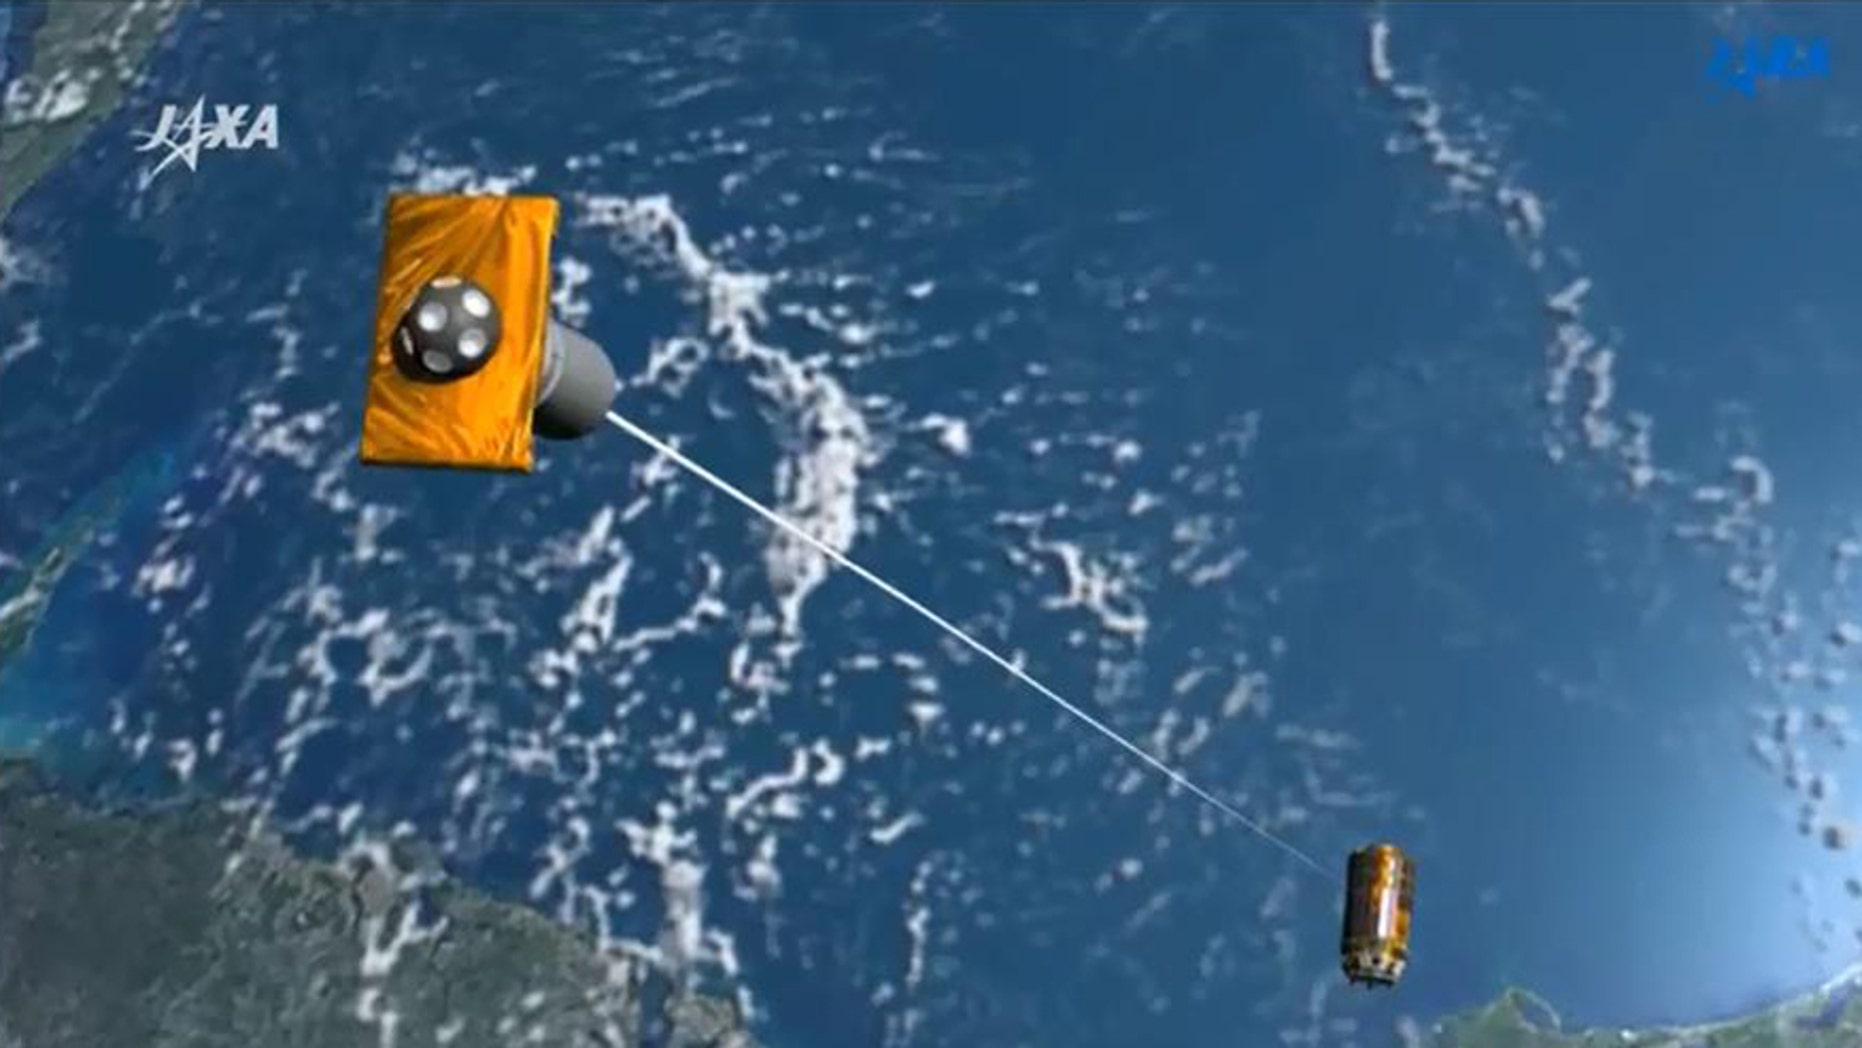 (Artist's impression - screenshot from JAXA YouTube video)